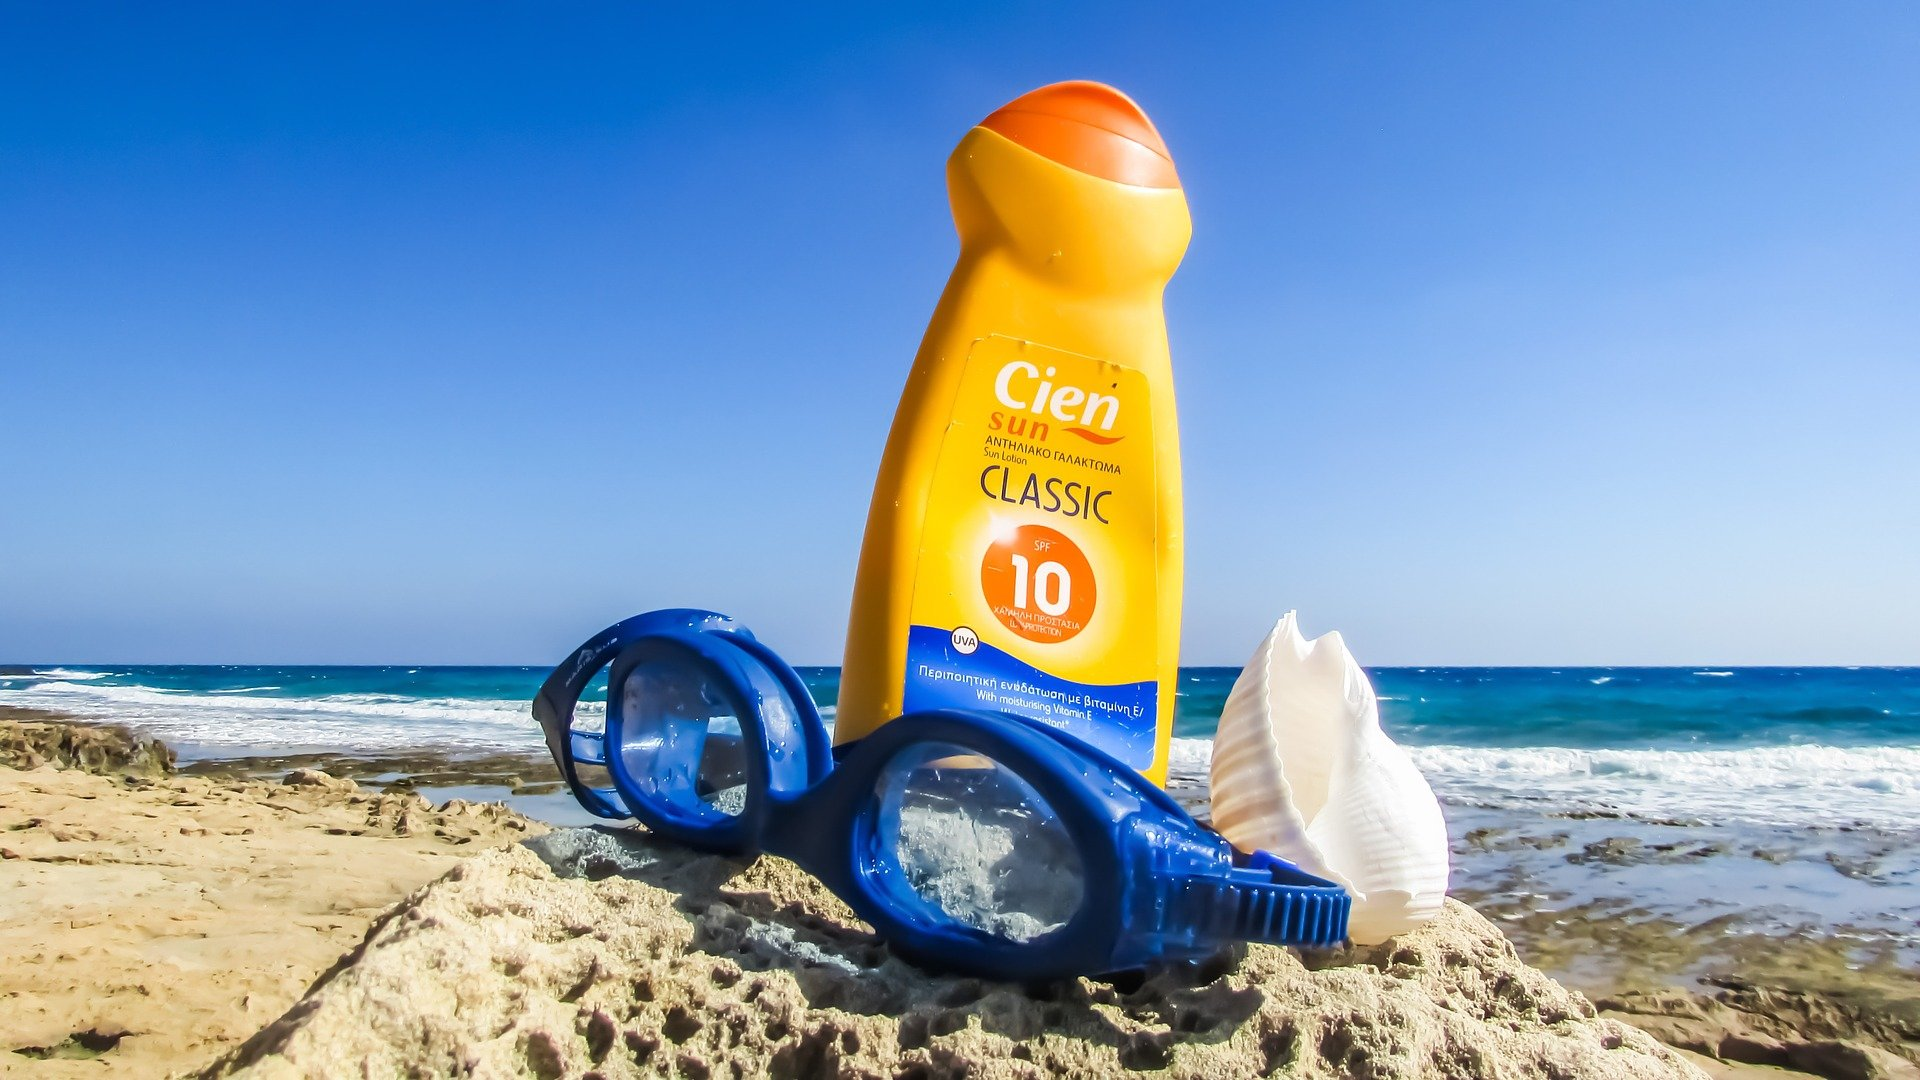 There's insufficient evidence your sunscreen harms coral reefs